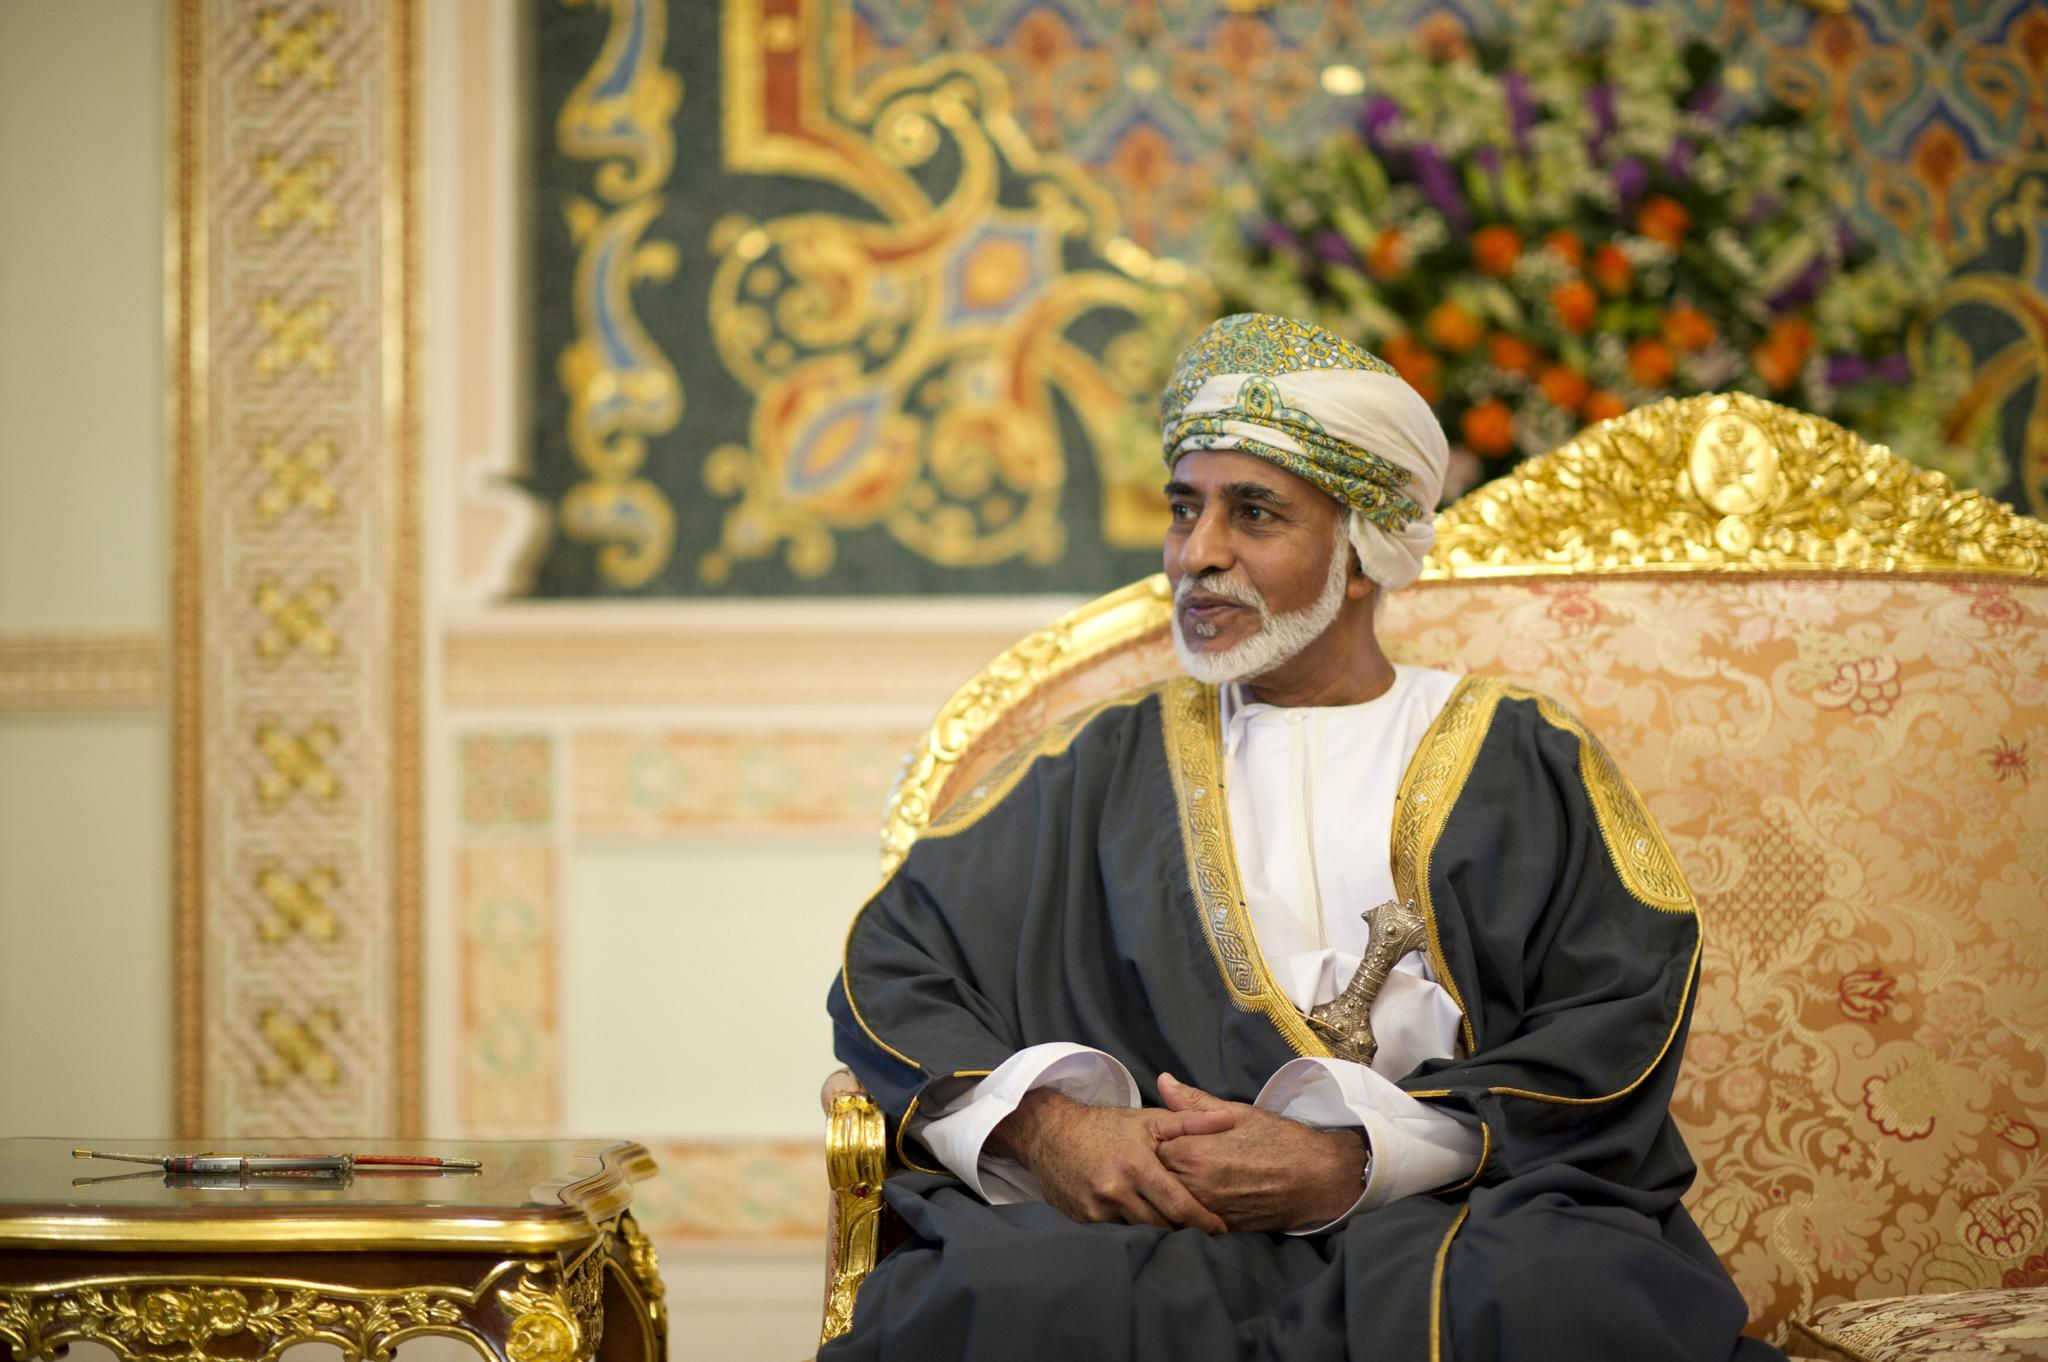 The Sultan of Oman, Qaboos bin Said al Said, sits in his palace in Muscat, Oman on March 25, 2012.